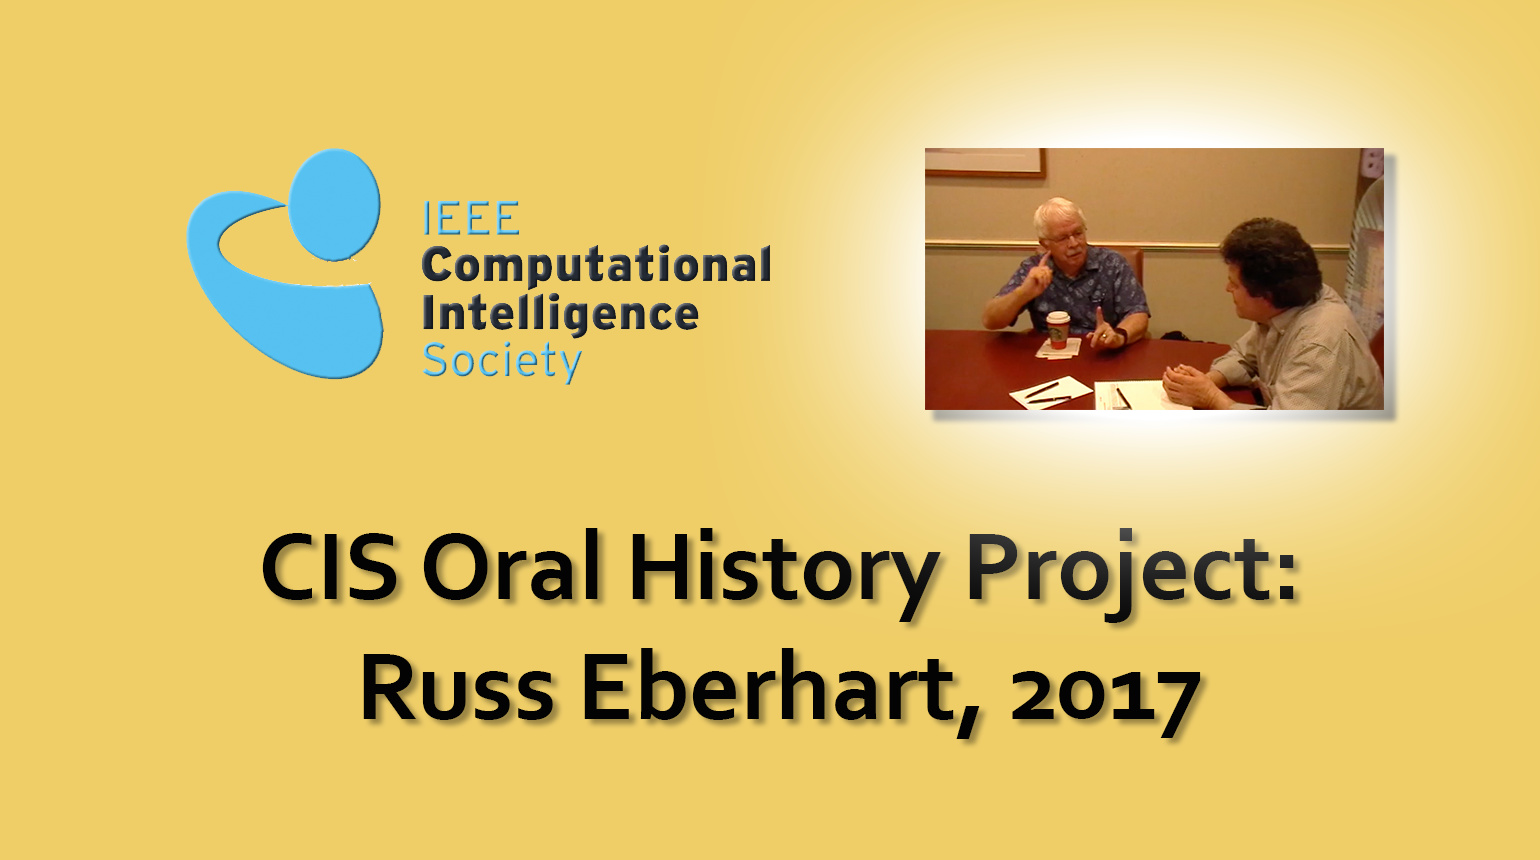 Interview with Russ Eberhart, 2017: CIS Oral History Project